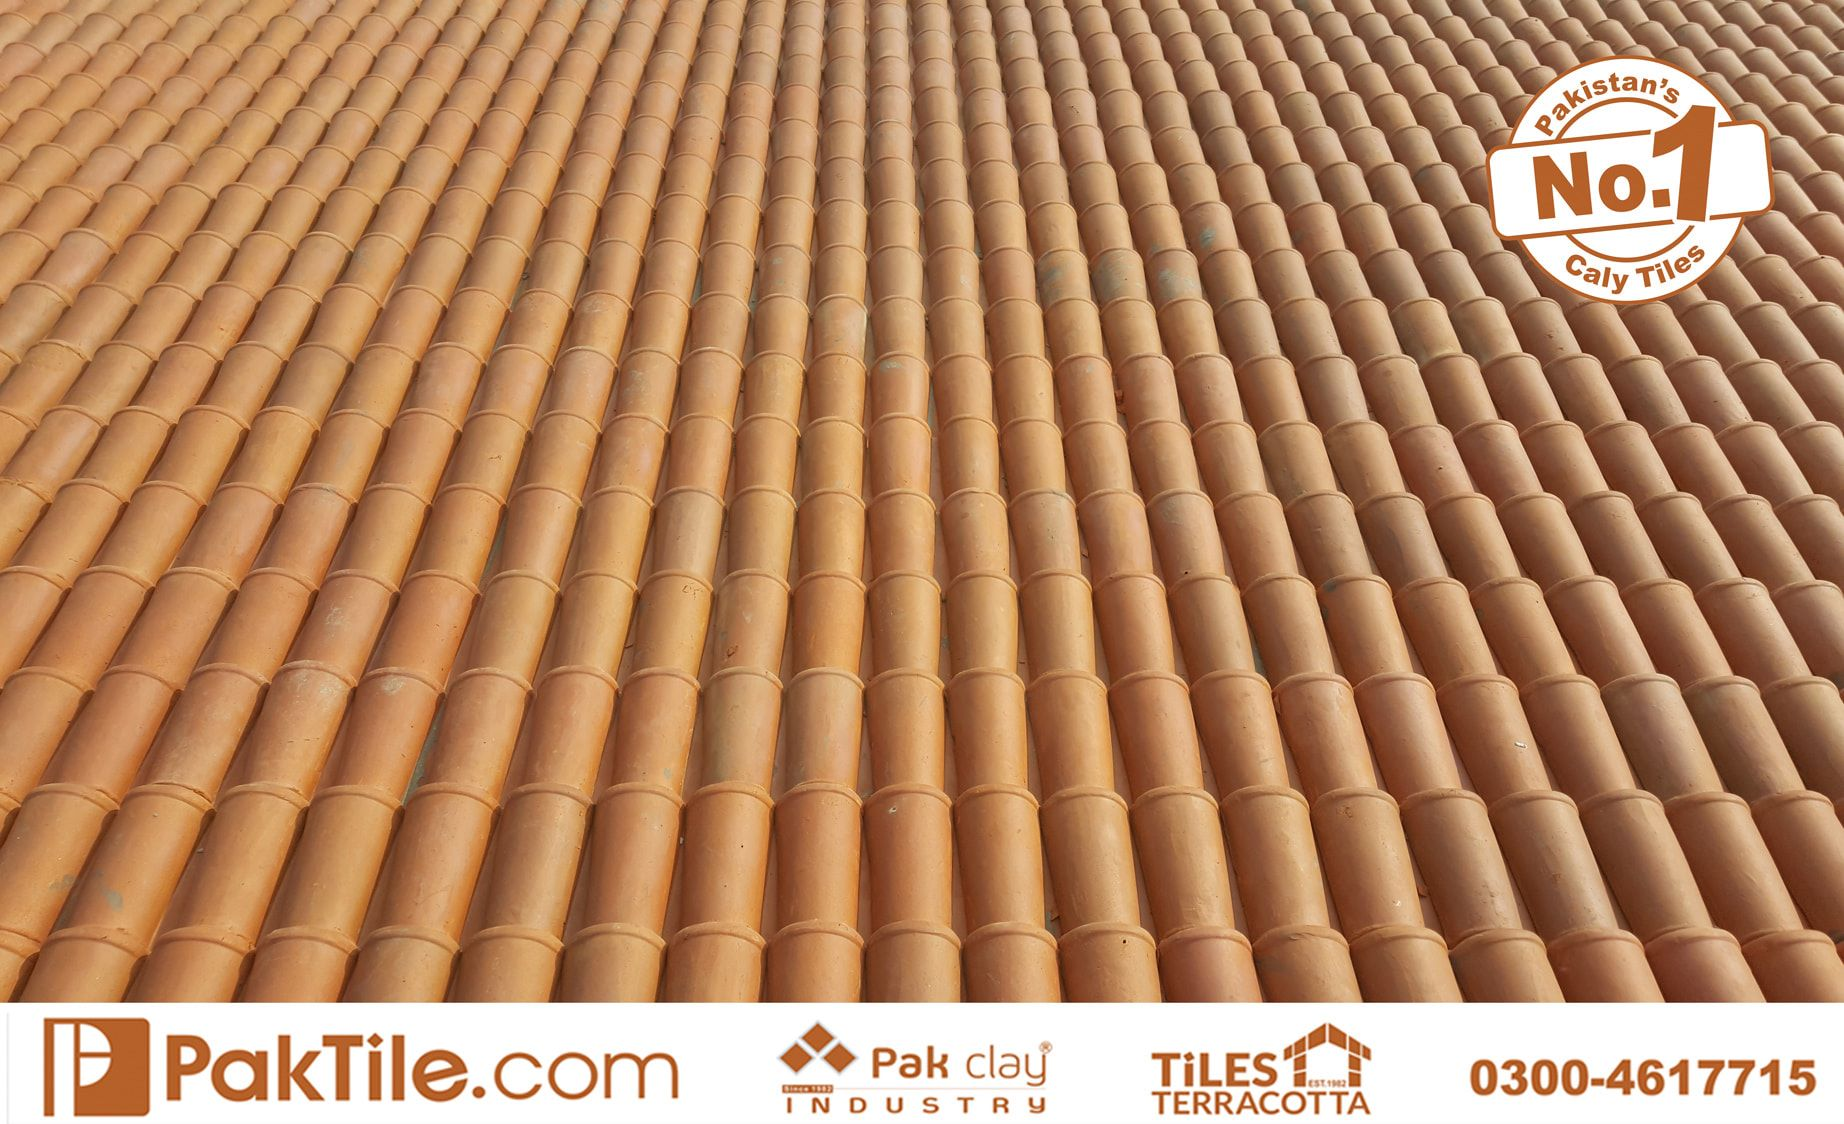 7 Pak Clay Terracotta Khaprail Clay Roof Tiles in Pakistan Images.